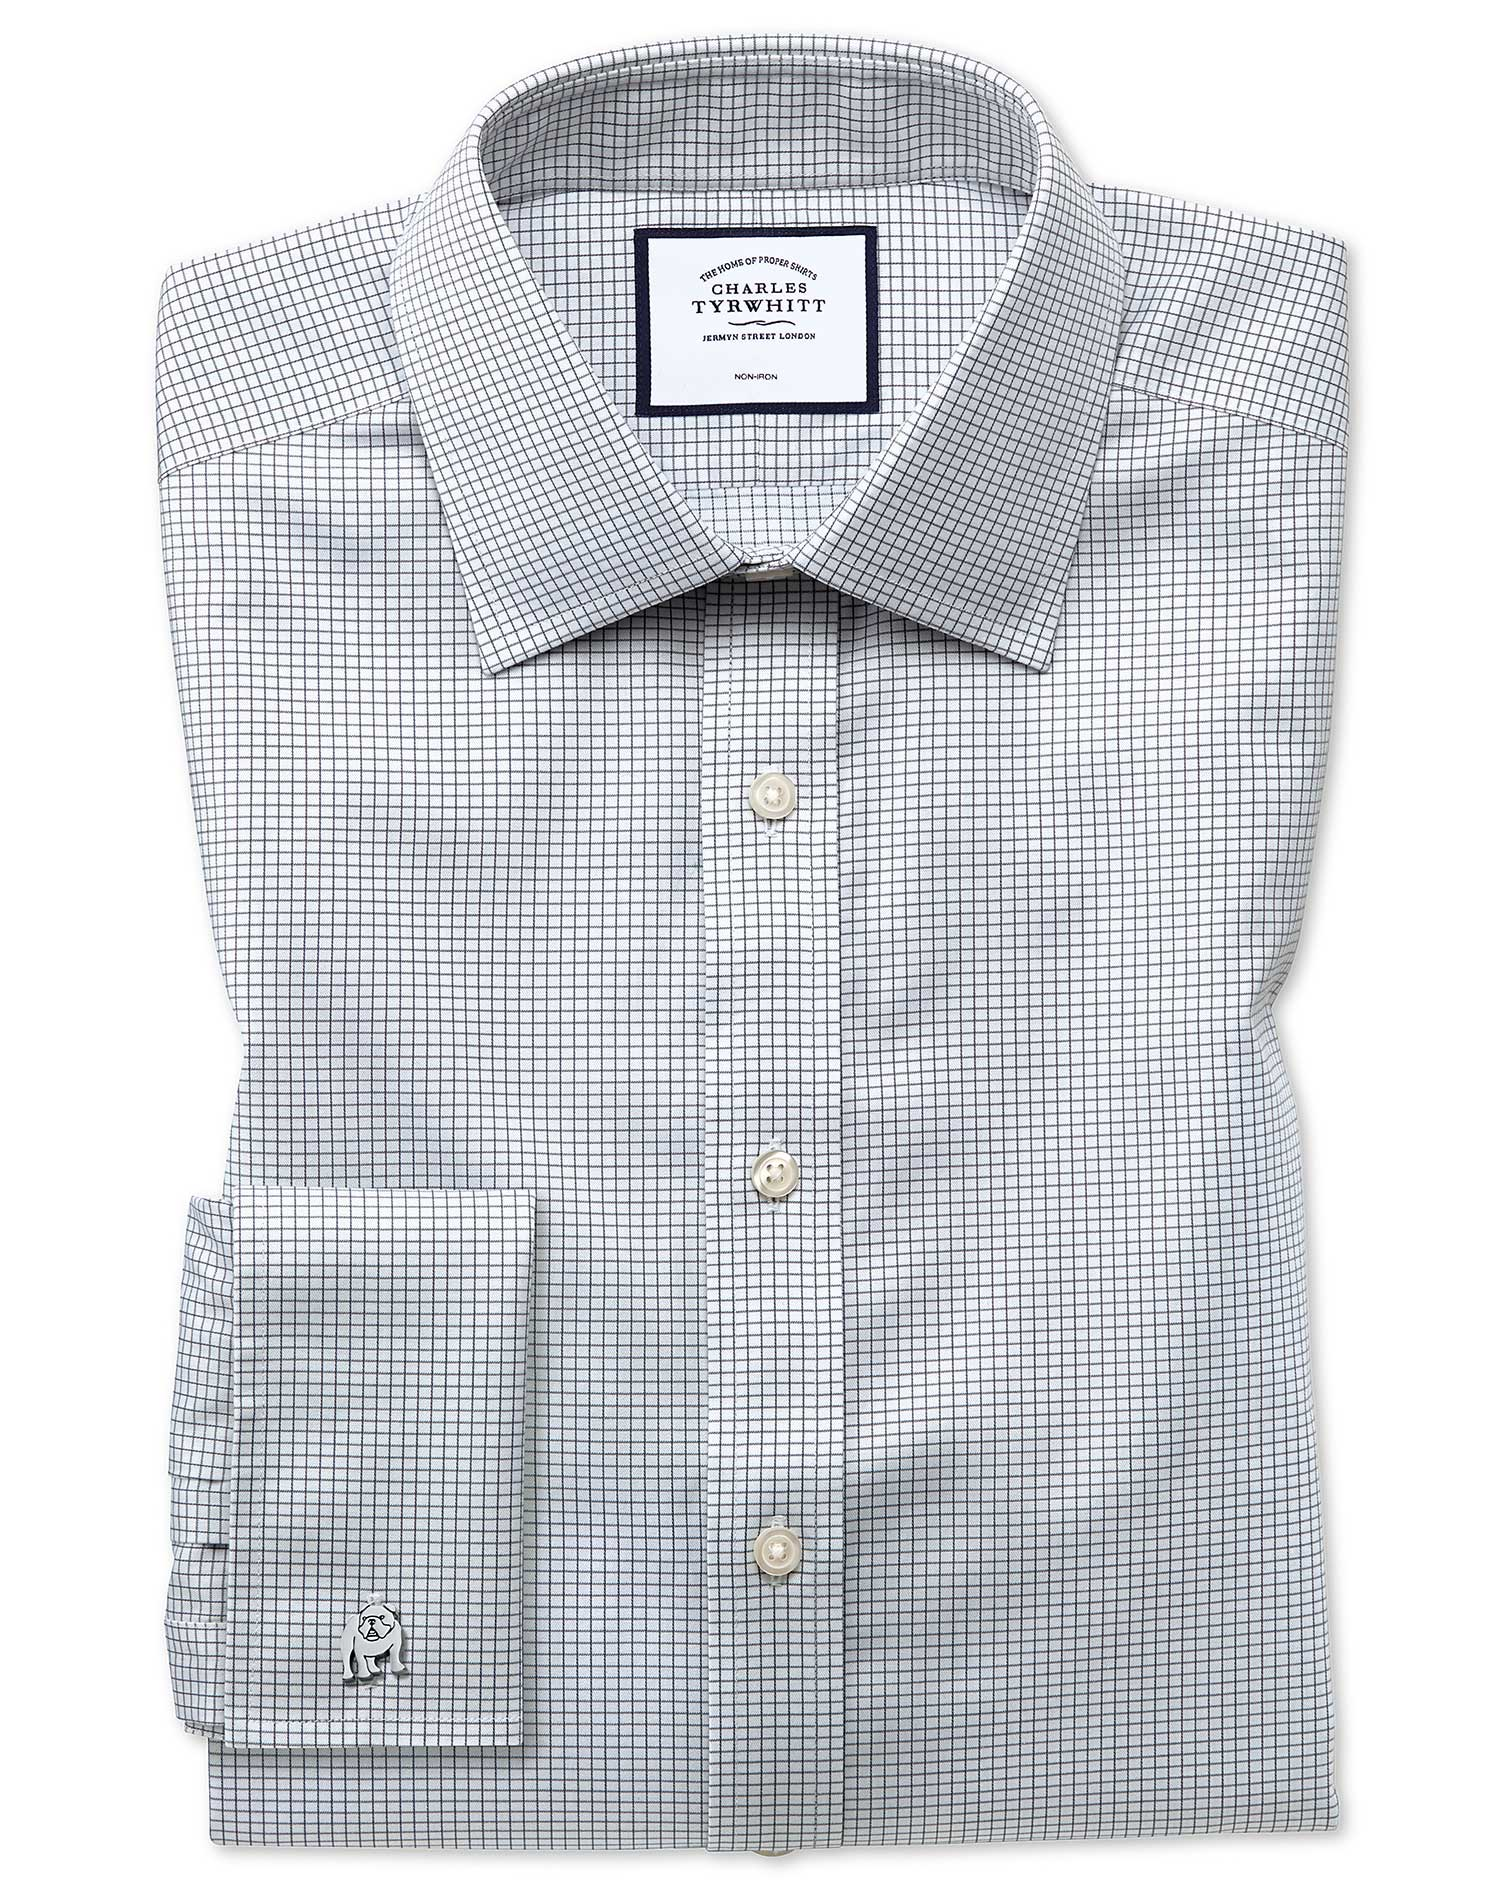 Extra Slim Fit Non-Iron Twill Mini Grid Check Grey Cotton Formal Shirt Double Cuff Size 15/33 by Cha